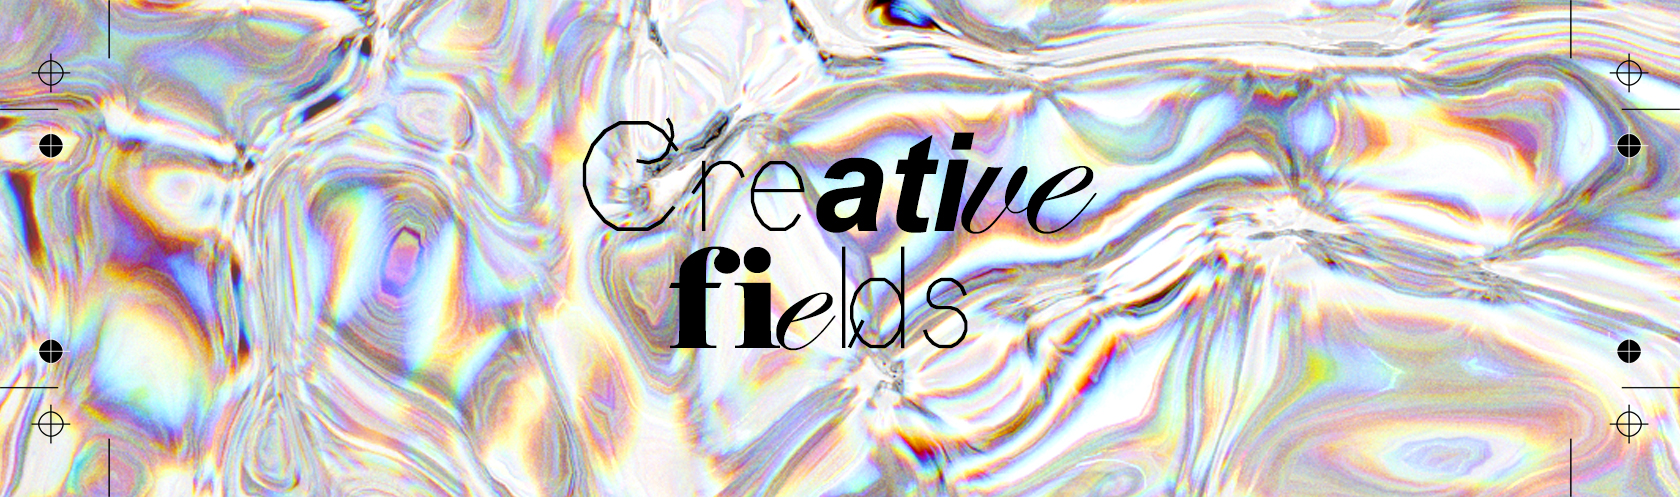 CREATIVE FIELDS – HERITAGE SPACE V